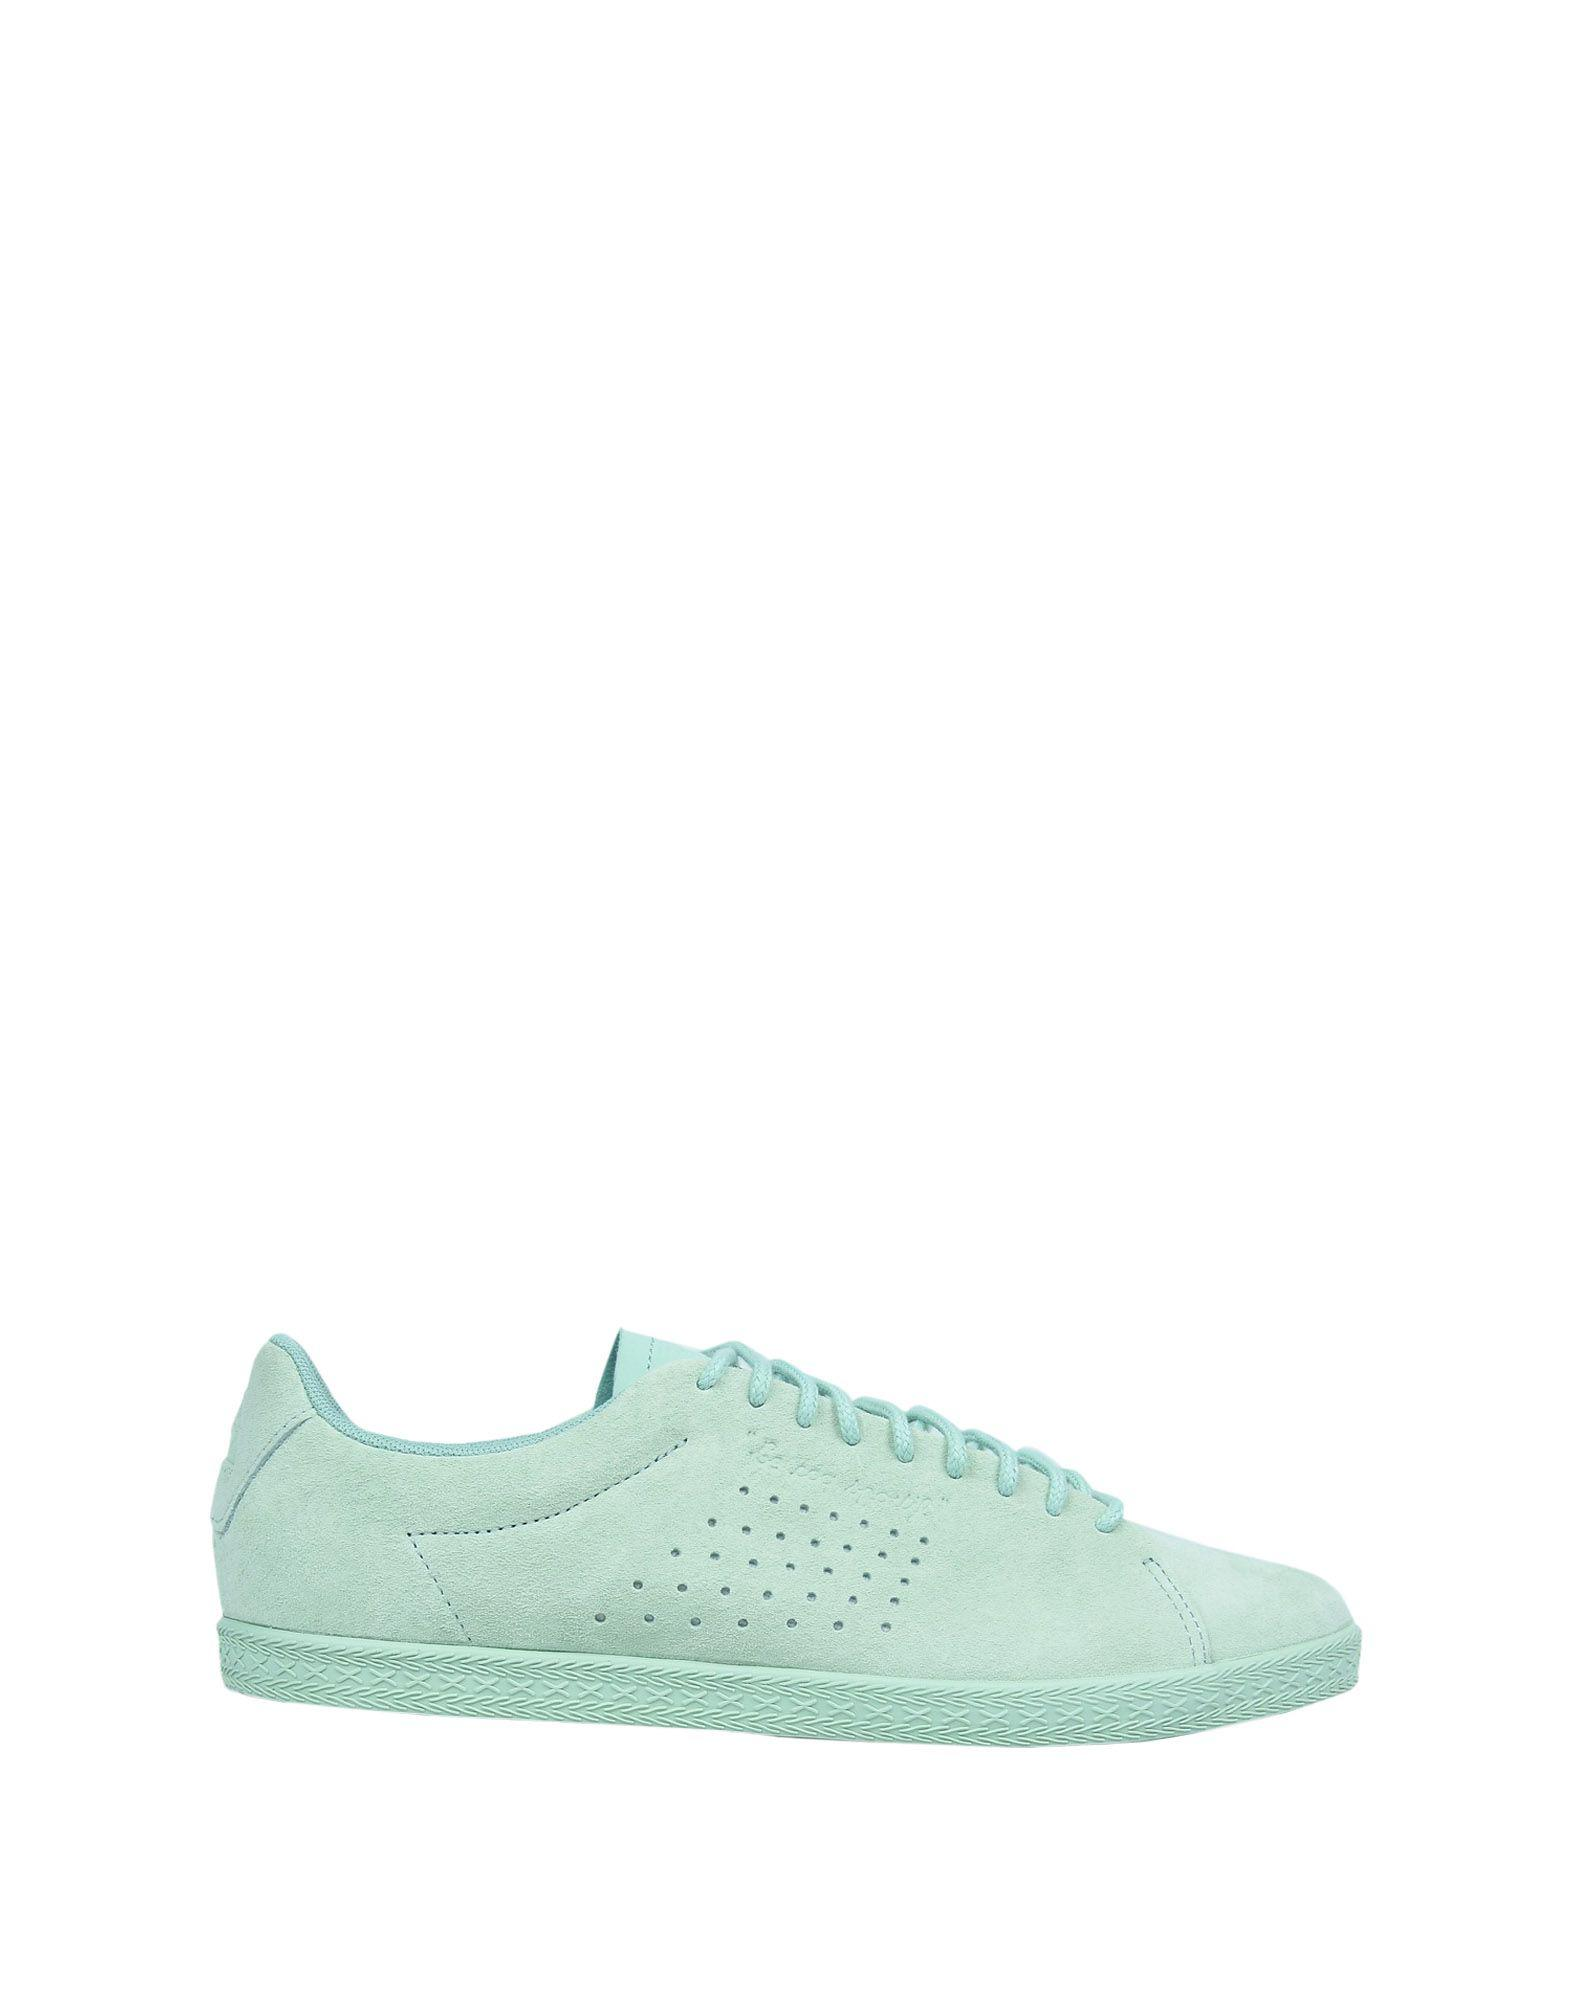 Le Coq Sportif Leather Low-tops & Sneakers in Light Green (Green)